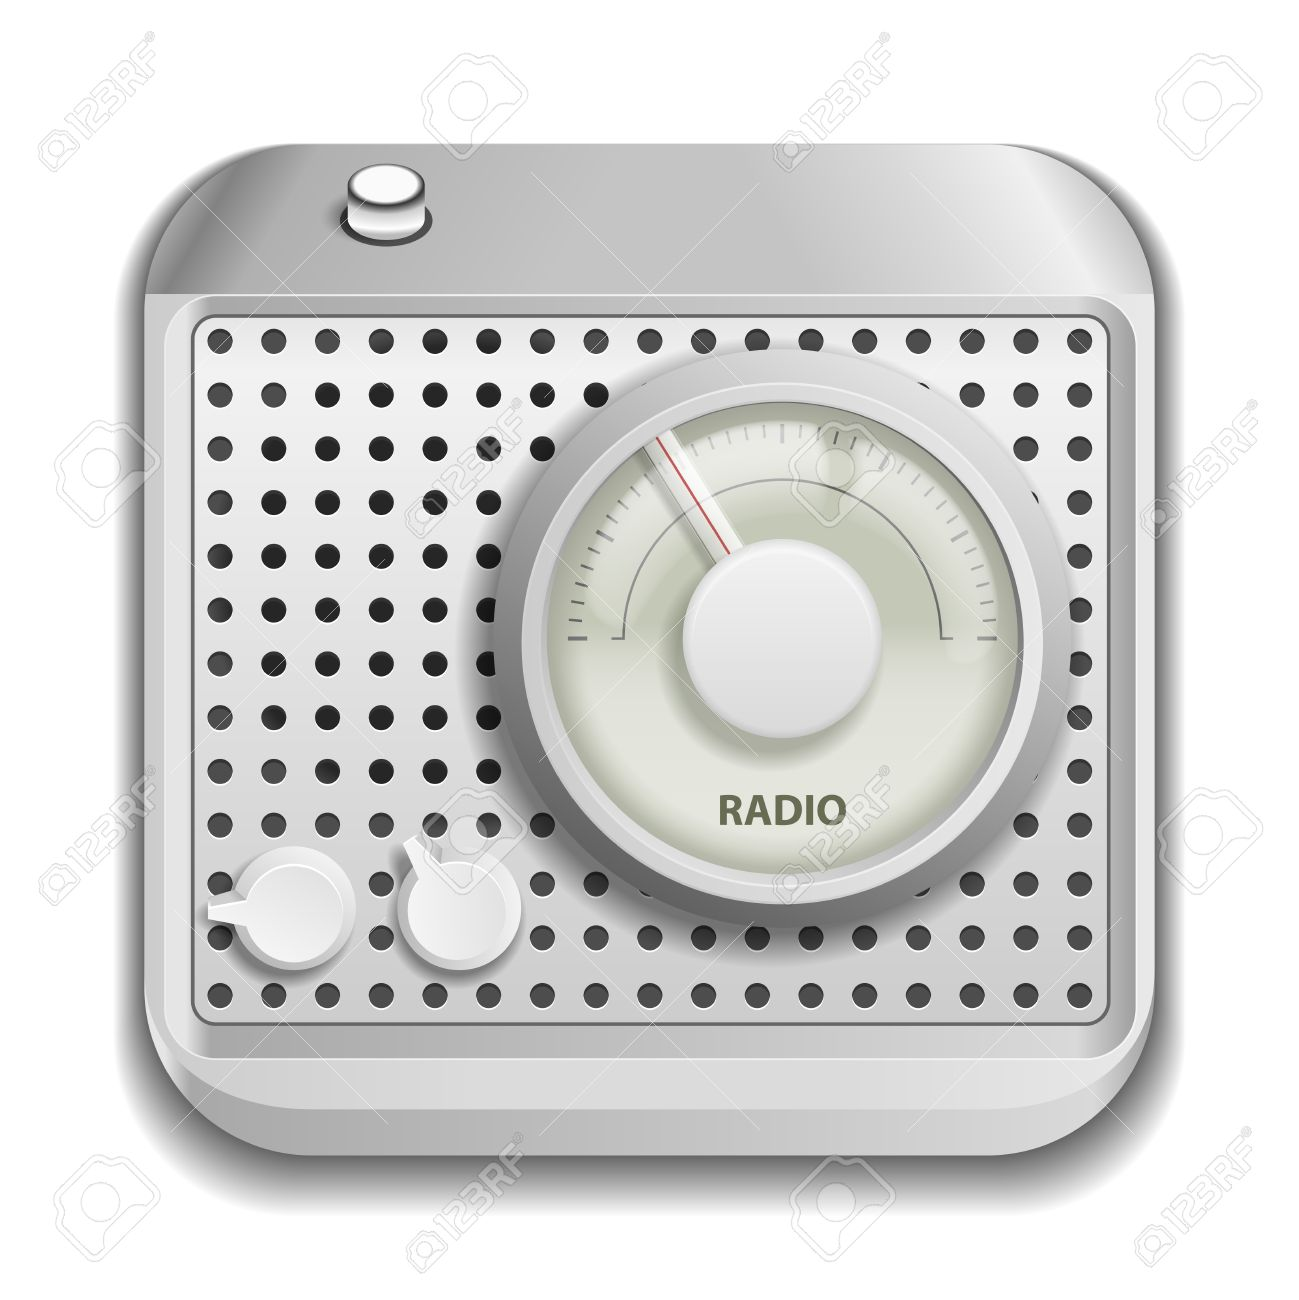 Radio app icon isolated on white background Stock Vector - 19665062